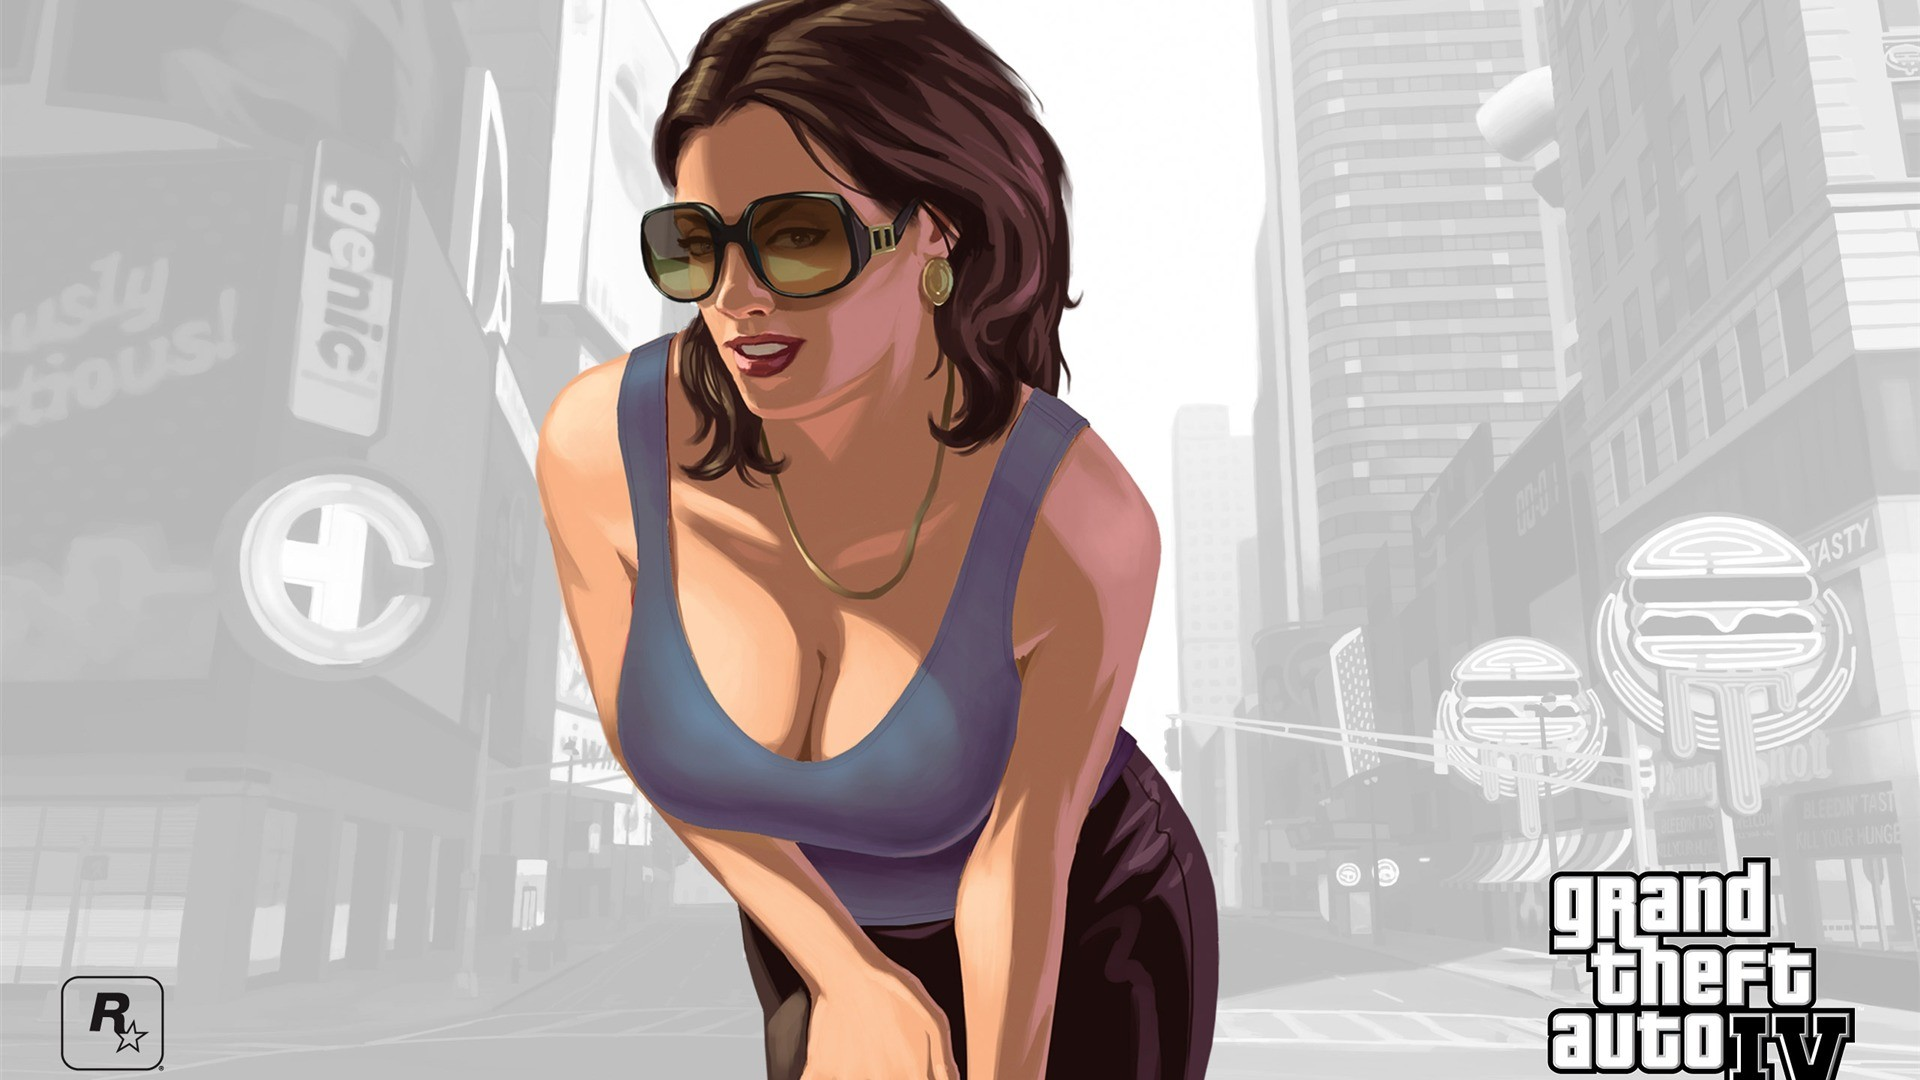 1920x1080 Grand Theft Auto: Vice City HD wallpaper #14 - .